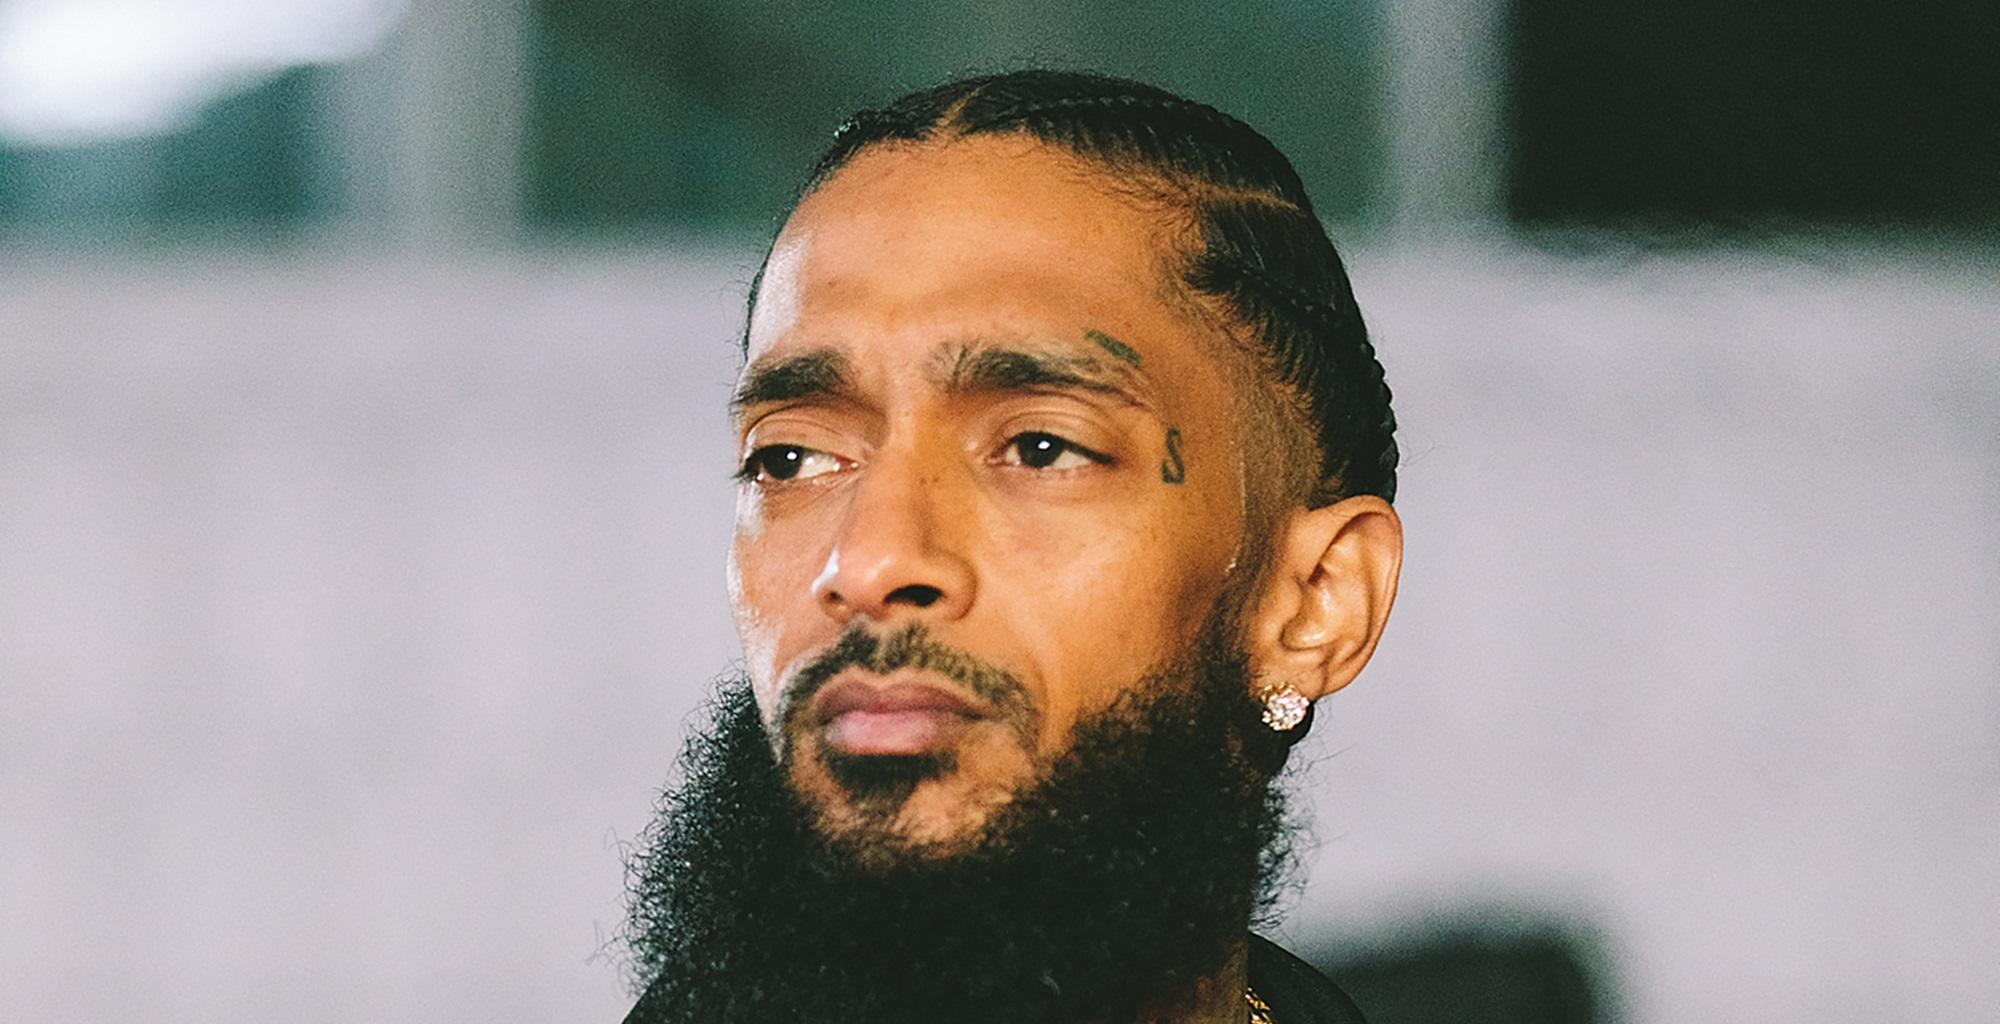 Nipsey Hussle's Fans Receive Some Disappointing News After A Photo Of The Mural Honoring Him In 'All American' TV Show Goes Viral